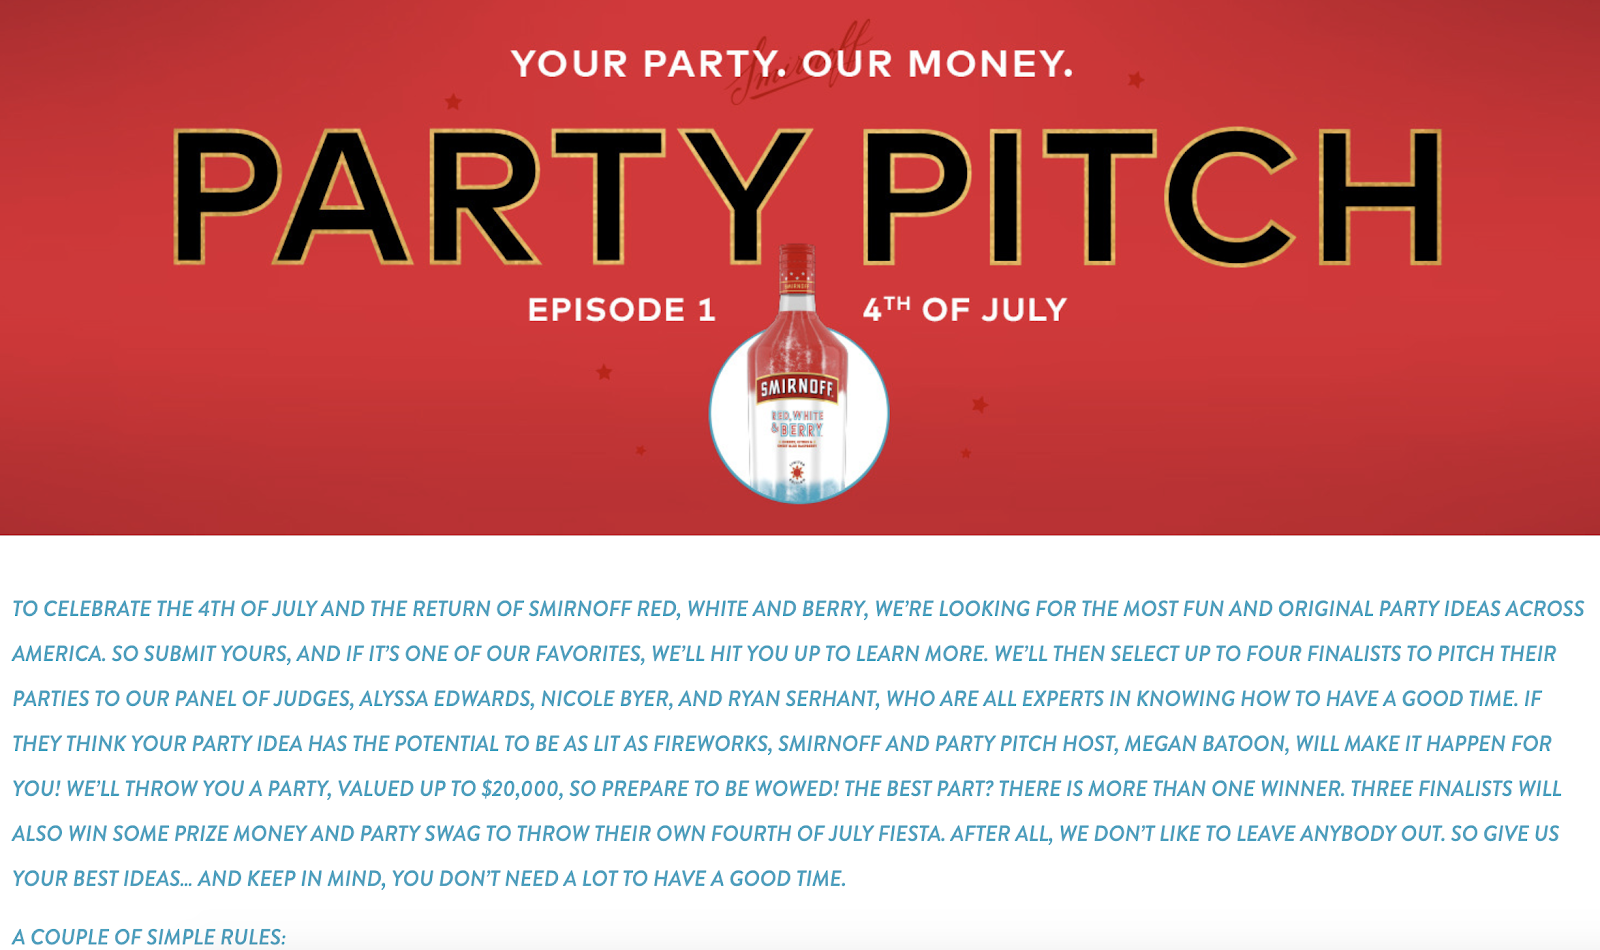 Smirnoff: 4th of July Party Pitch